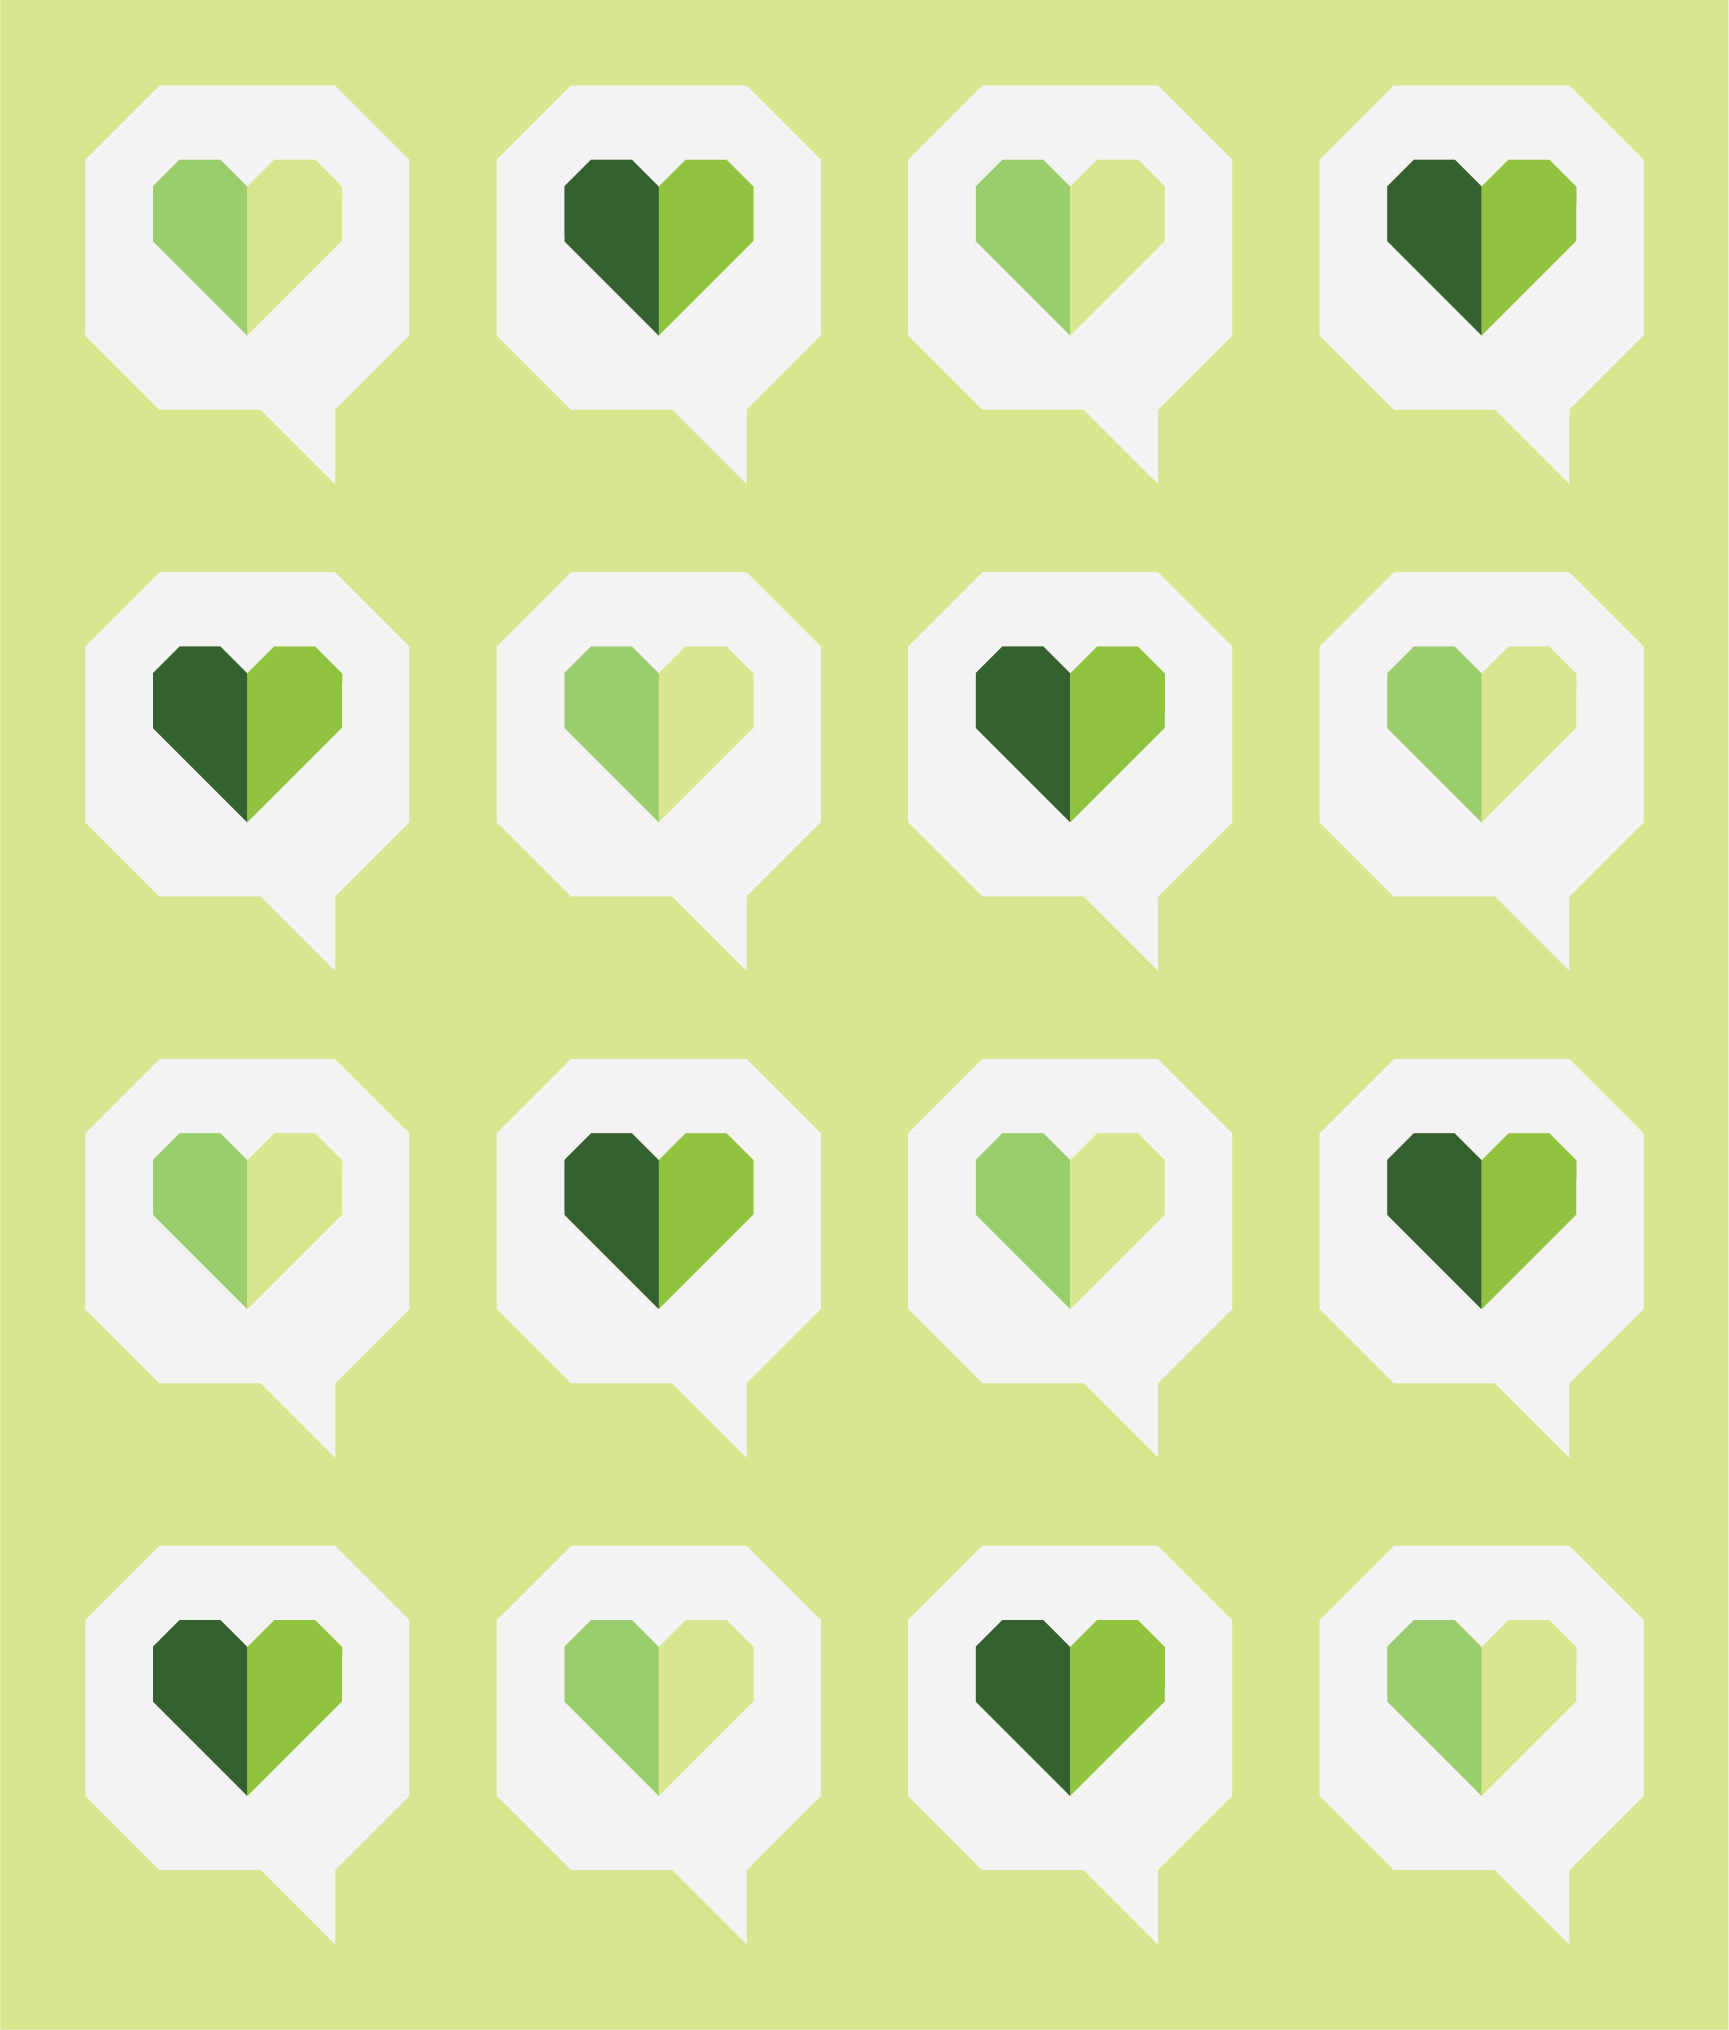 I Heart You Quilt by Then Came June: Yellow Green version by Sewfinity